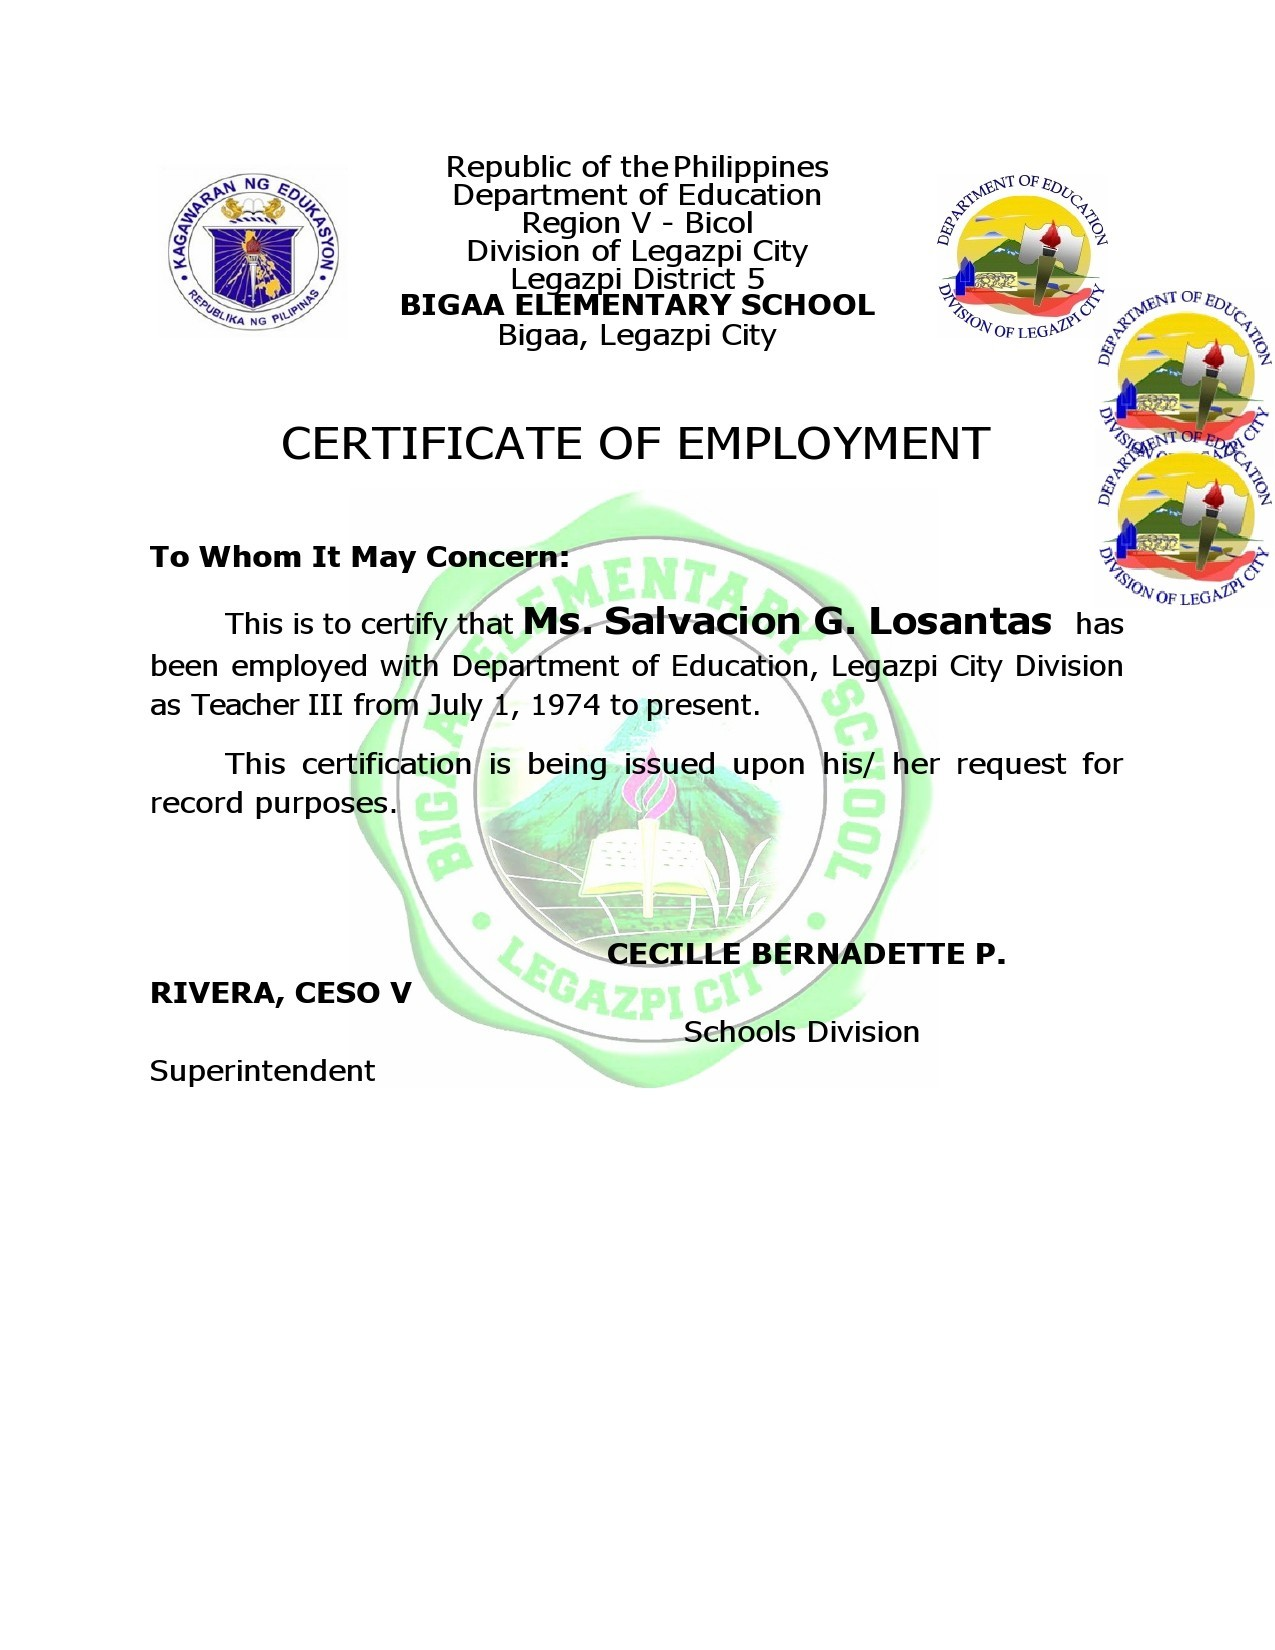 Free certificate of employment 31